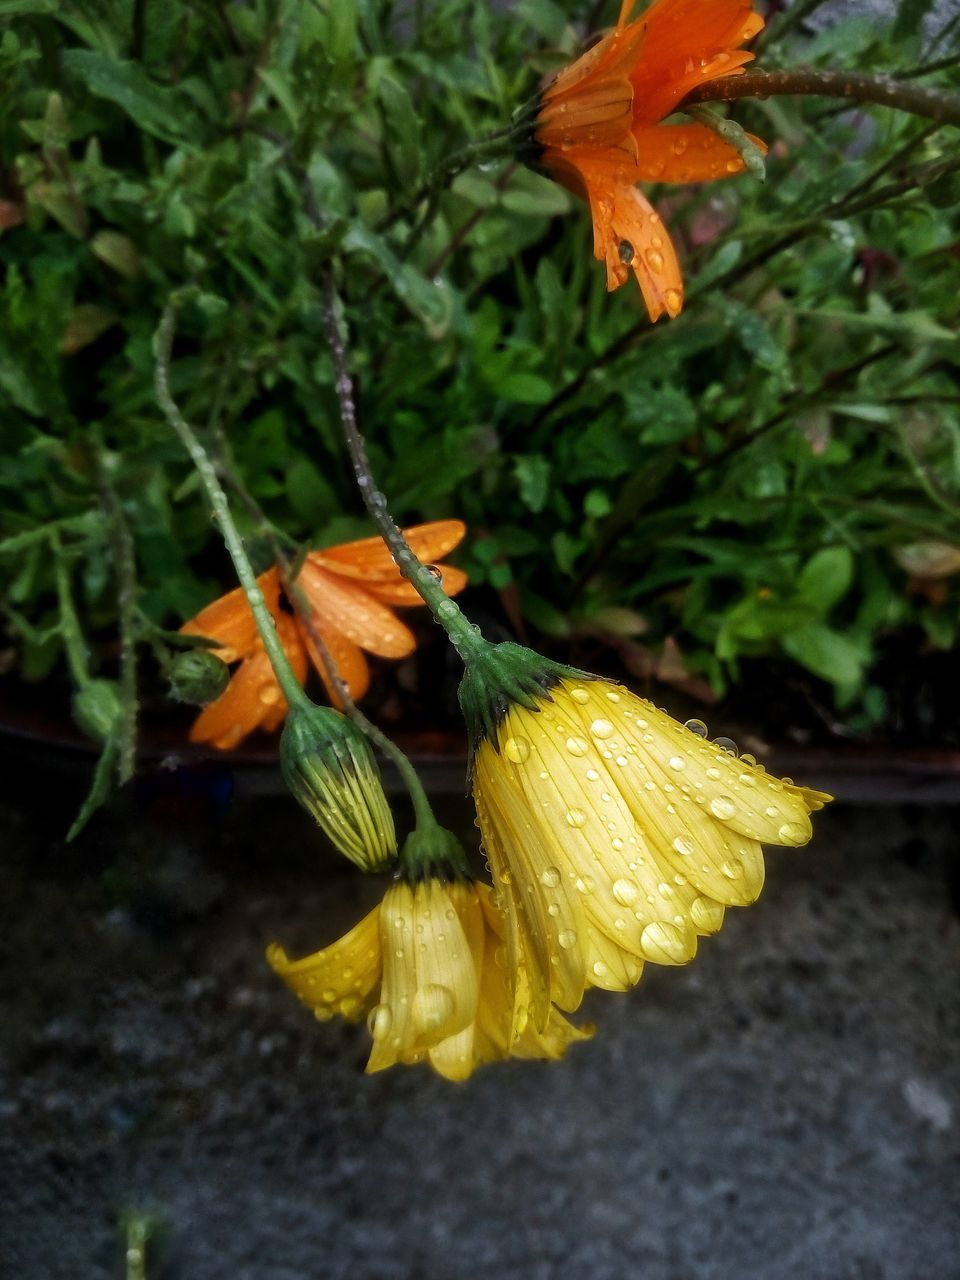 flower, growth, orange color, yellow, petal, nature, beauty in nature, green color, outdoors, fragility, no people, freshness, plant, flower head, day, leaf, close-up, day lily